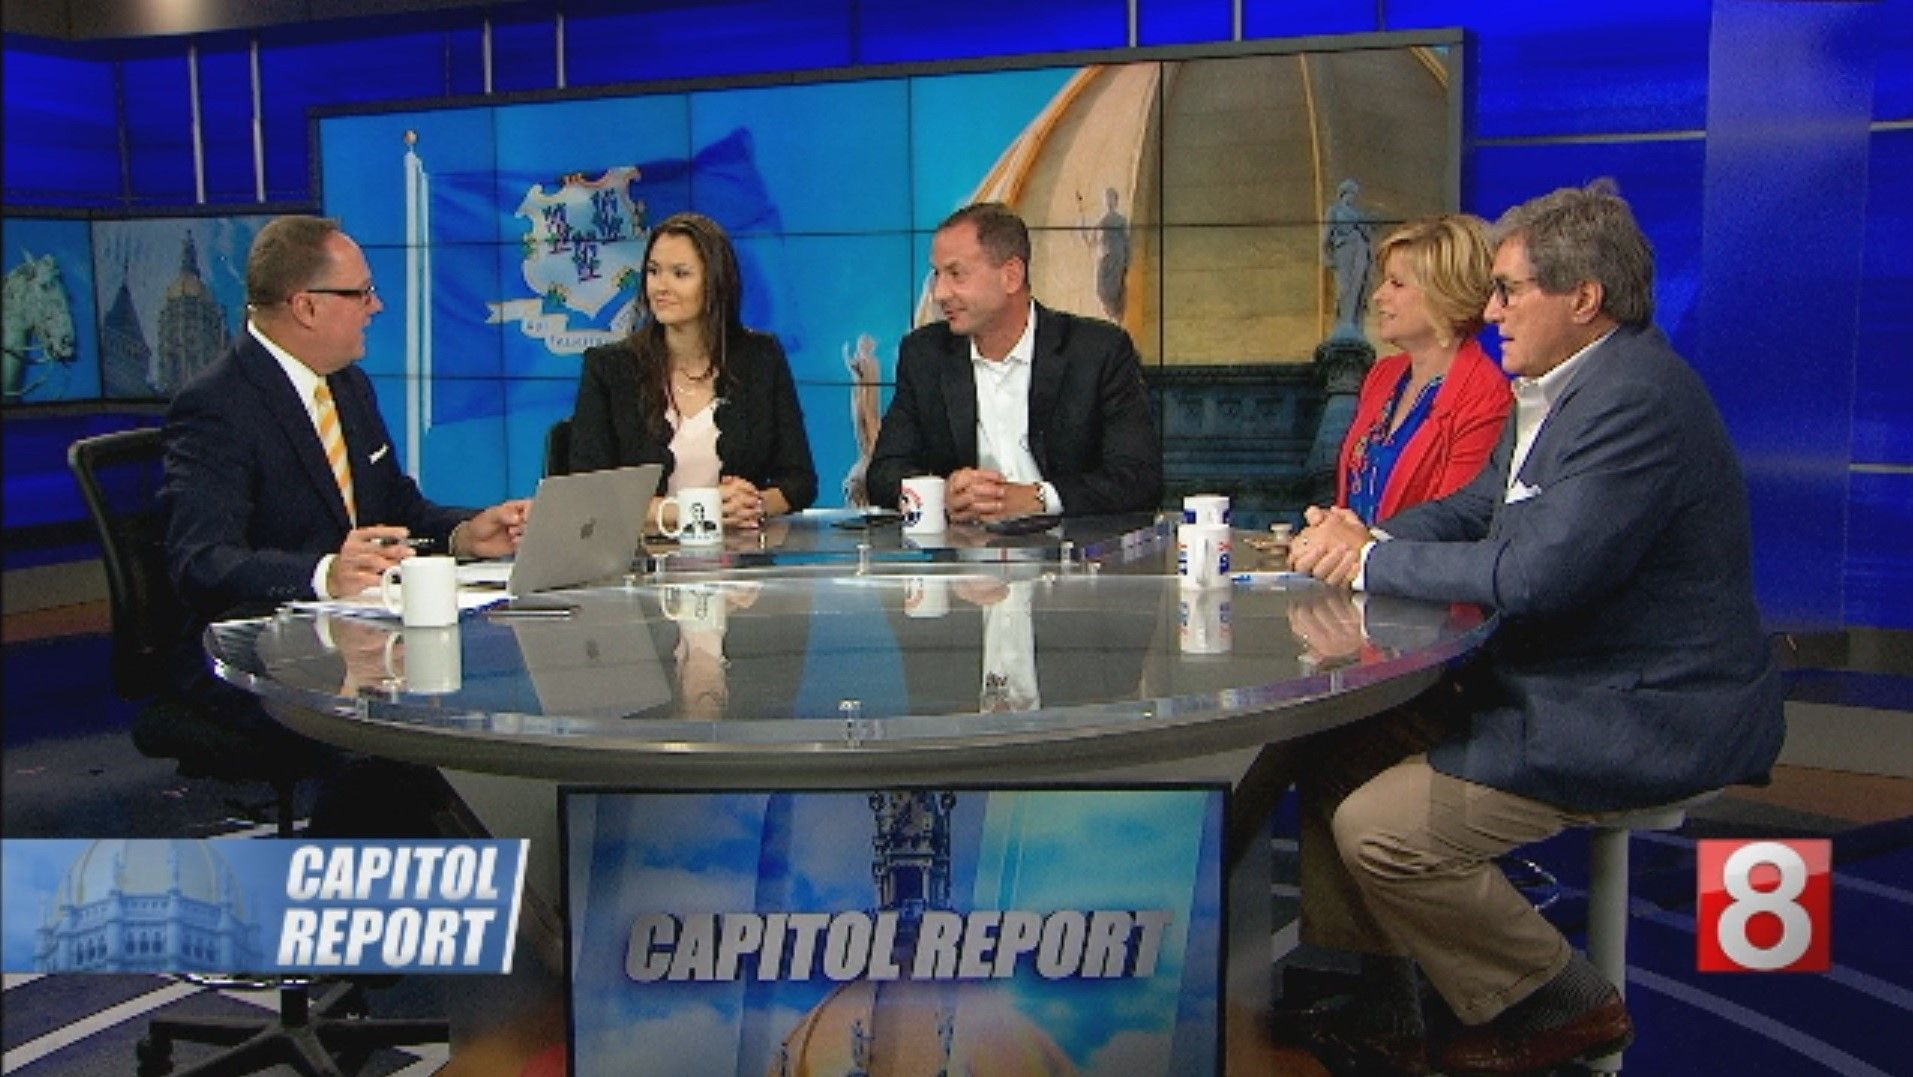 TV News show with 5 people around the table discussing Capitol Report